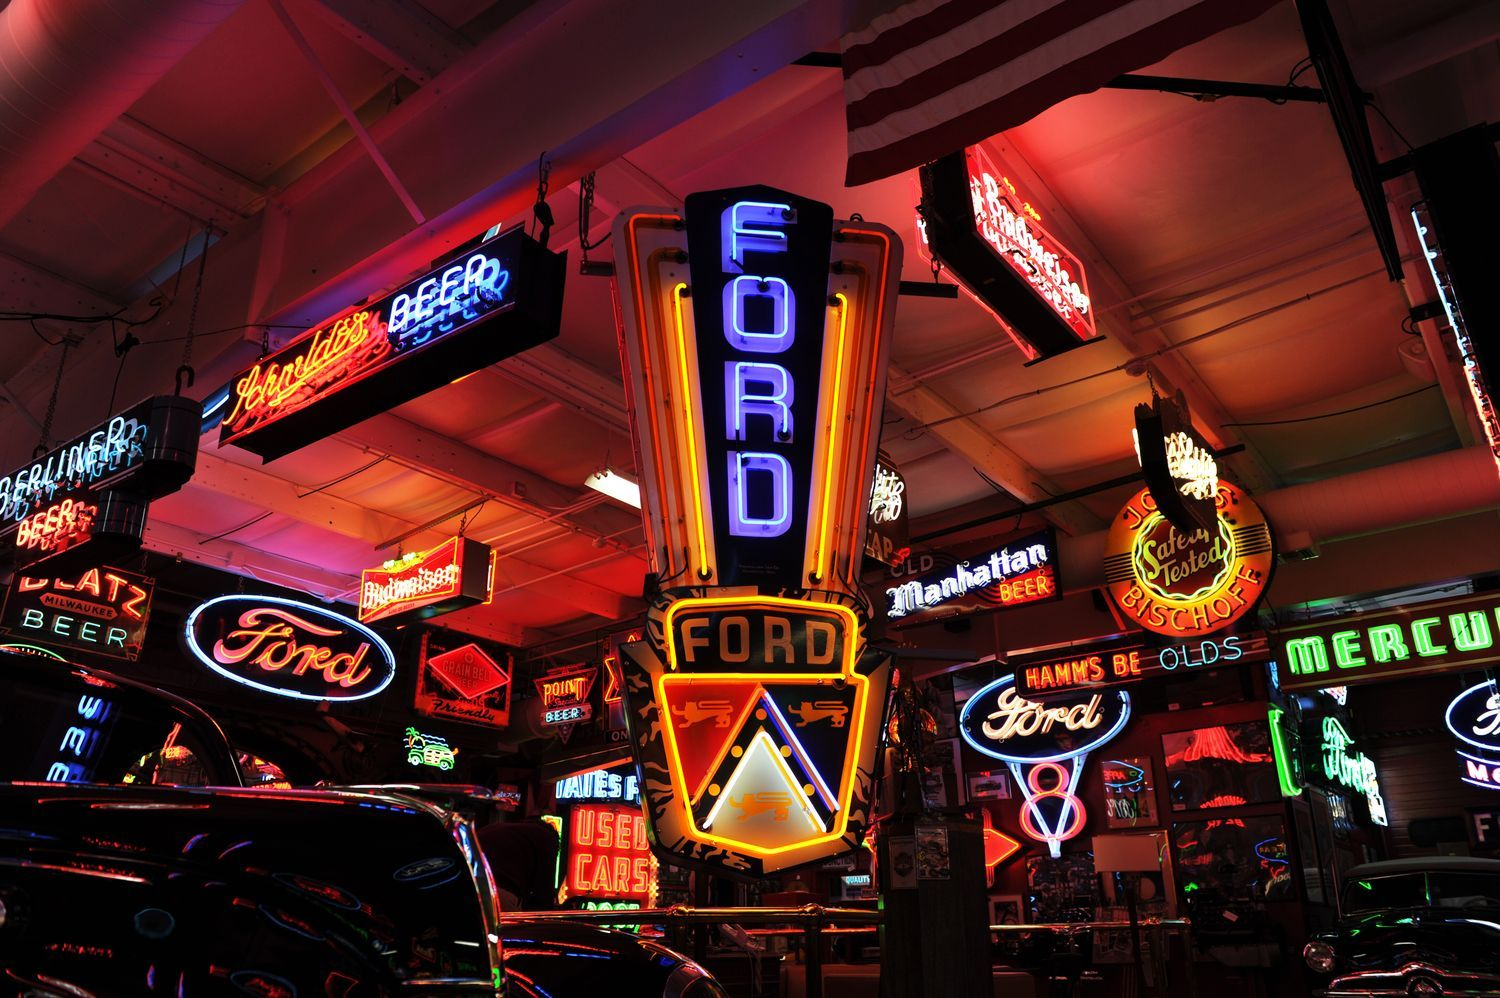 Man Cave Neon Signs For Sale : Neon signs add color to rm dingman sale